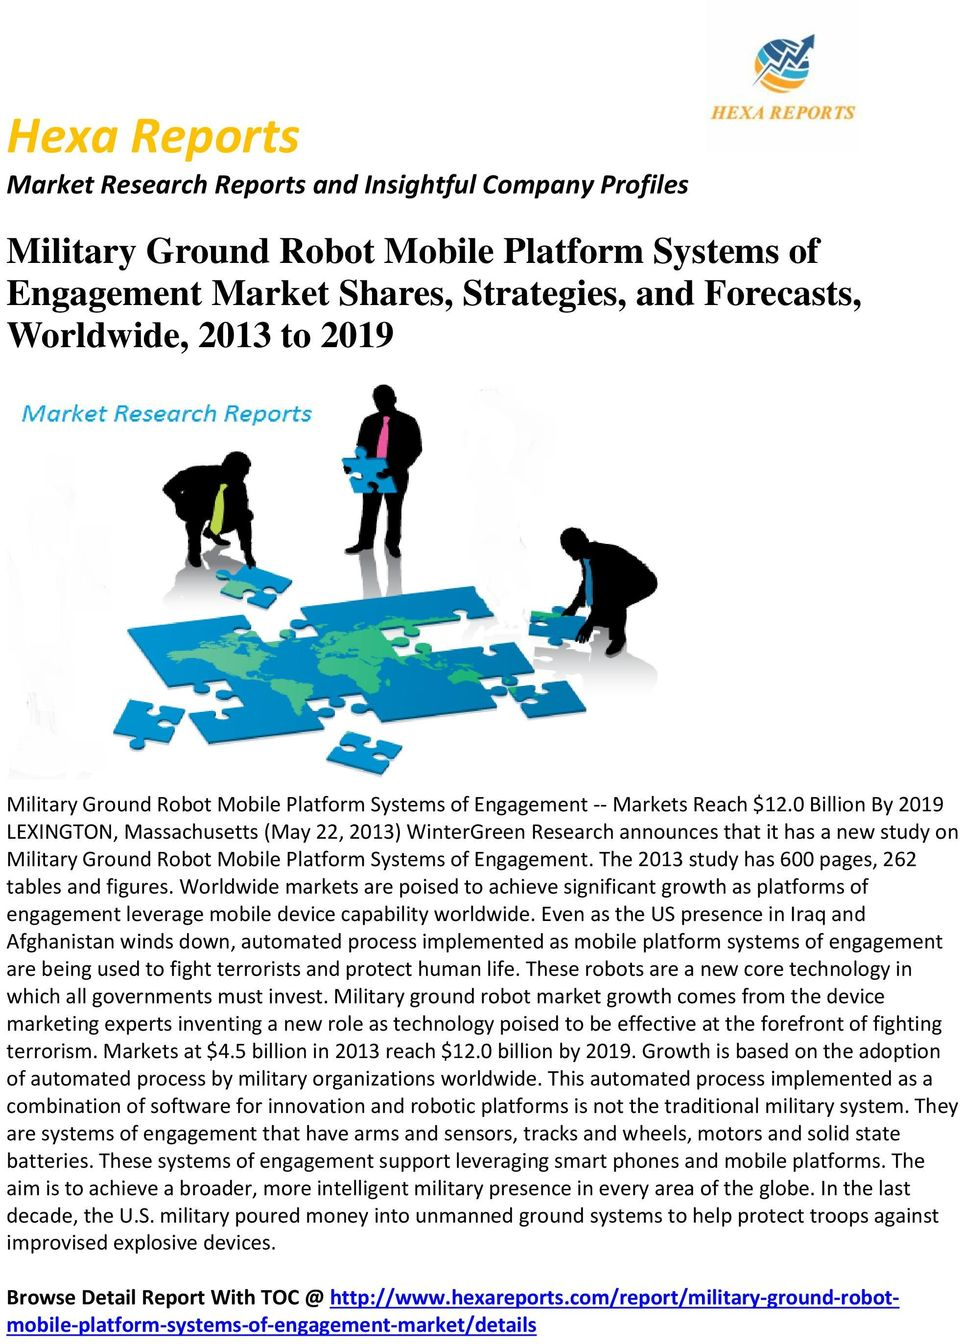 The 2013 study has 600 pages, 262 tables and figures. Worldwide markets are poised to achieve significant growth as platforms of engagement leverage mobile device capability worldwide.